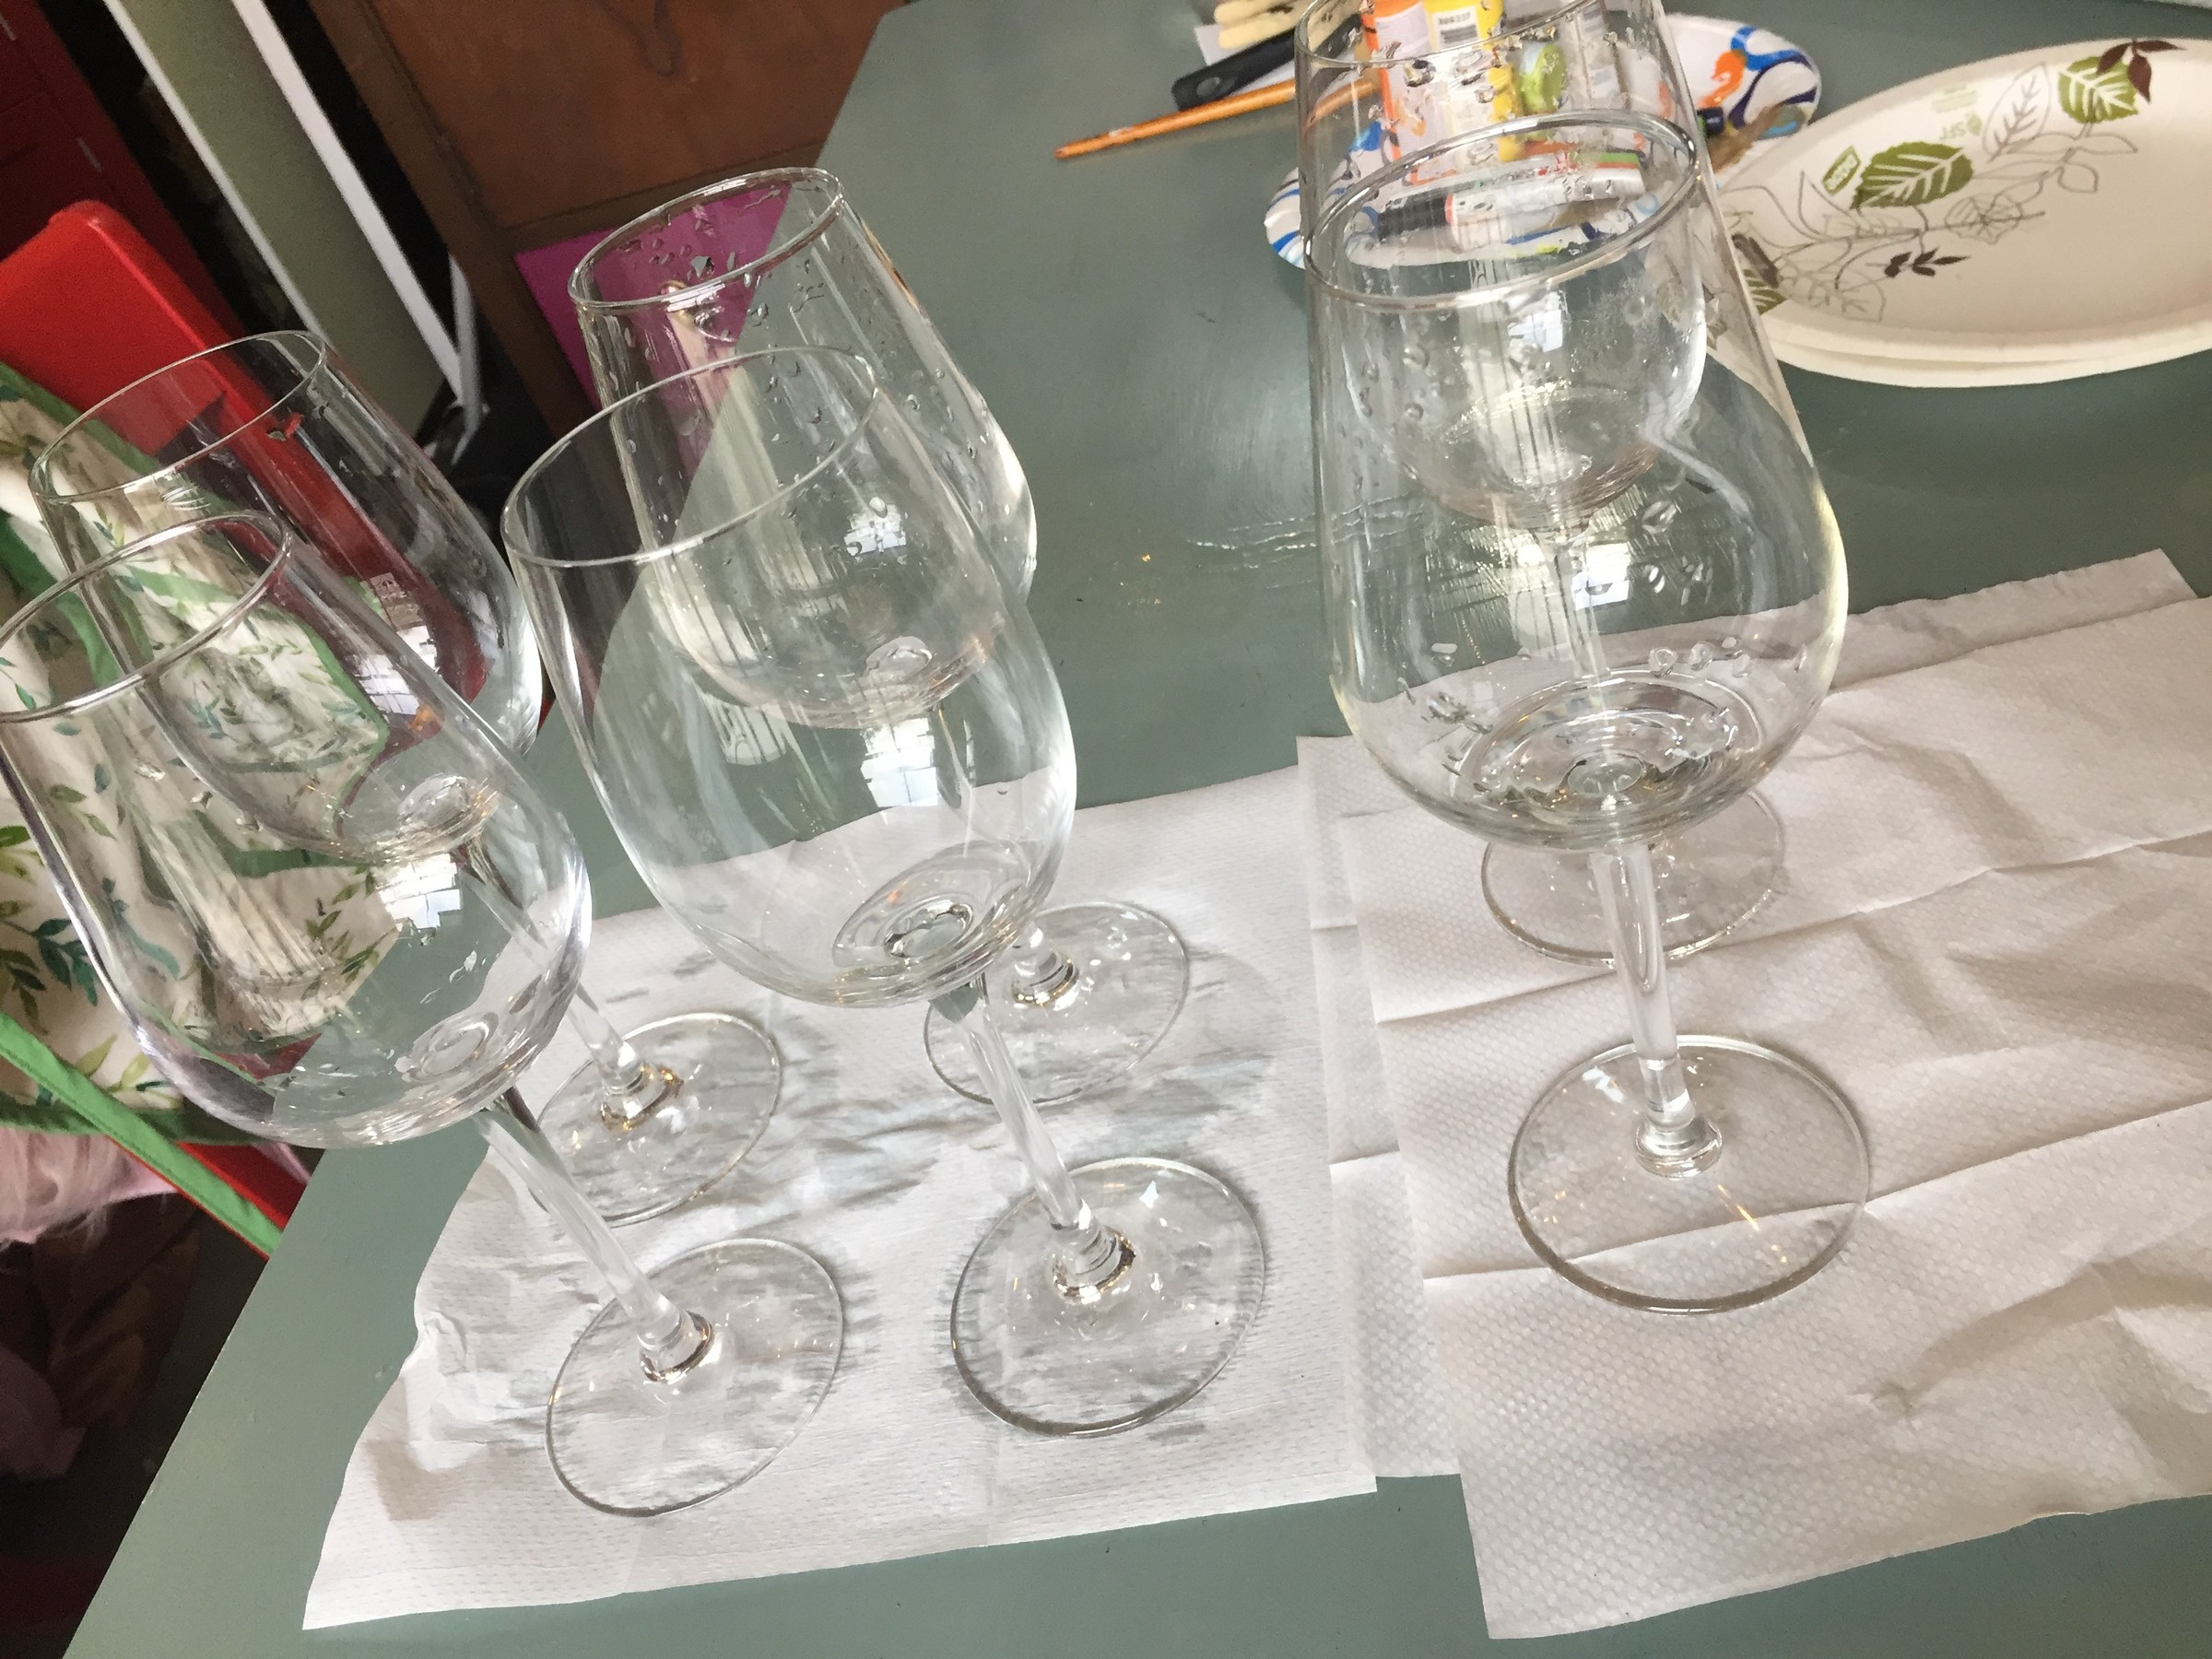 Tim's Goodwill wine glasses, washed and drying on paper towel